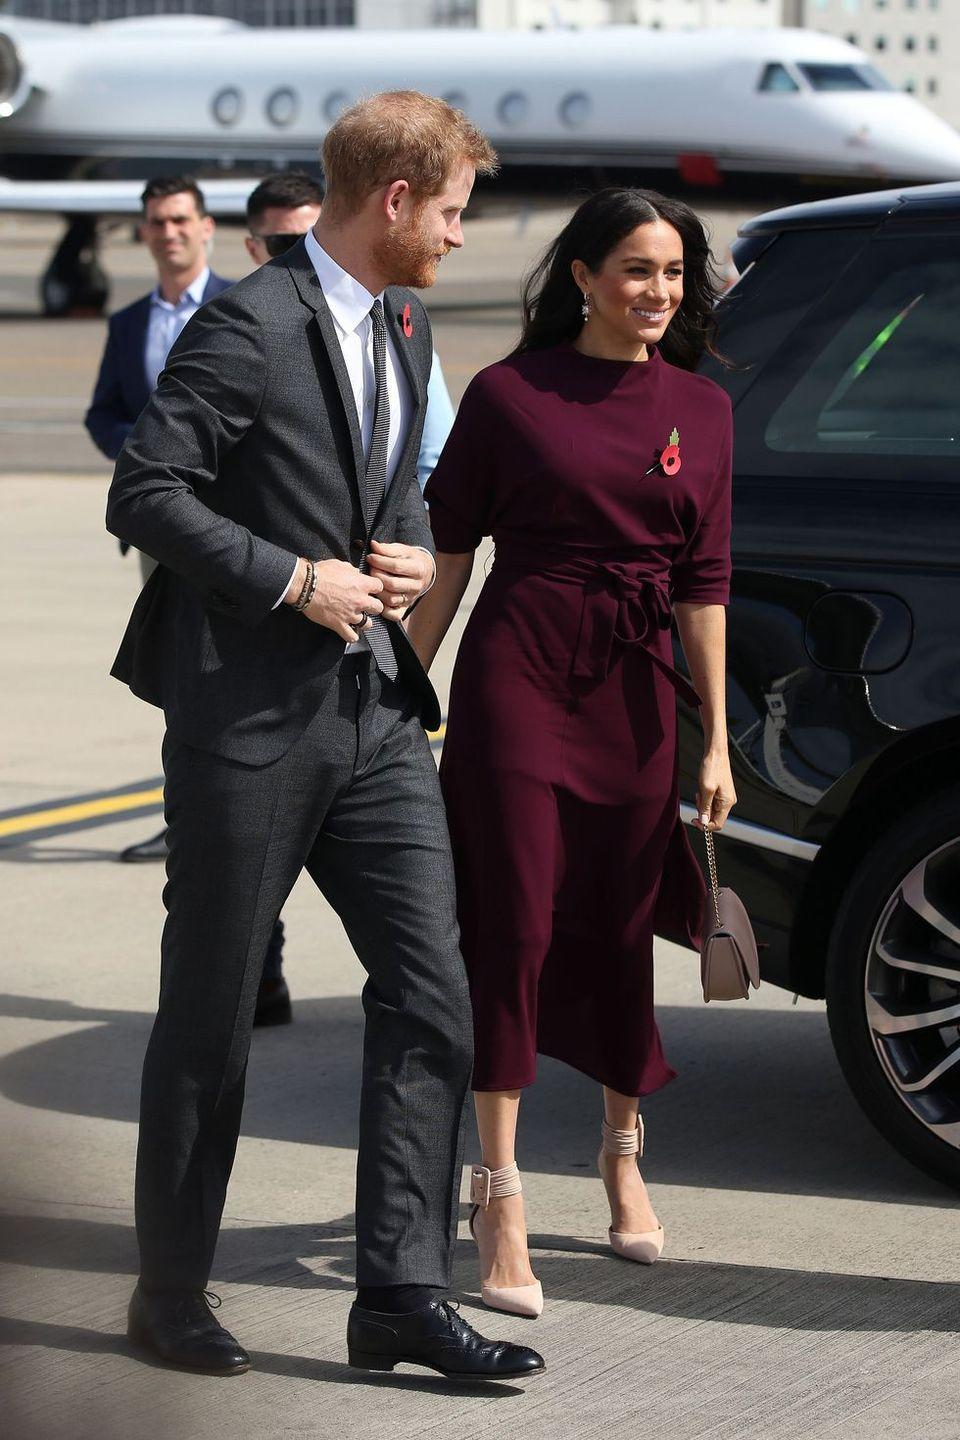 "<p>The couple left for the final country on their royal tour schedule, New Zealand, on Sunday, October 28. The Duchess wore a burgundy Hugo Boss dress for the travel day.</p><p><a class=""link rapid-noclick-resp"" href=""https://go.redirectingat.com?id=74968X1596630&url=https%3A%2F%2Fwww.hugoboss.com%2Fuk%2Fslim-fit-dress-in-soft-jersey-with-detachable-belt%2F4029049659730.html&sref=https%3A%2F%2Fwww.townandcountrymag.com%2Fstyle%2Ffashion-trends%2Fg3272%2Fmeghan-markle-preppy-style%2F"" rel=""nofollow noopener"" target=""_blank"" data-ylk=""slk:SHOP NOW"">SHOP NOW</a><em> Soft Jersey Dress by Hugo Boss, $319</em></p>"